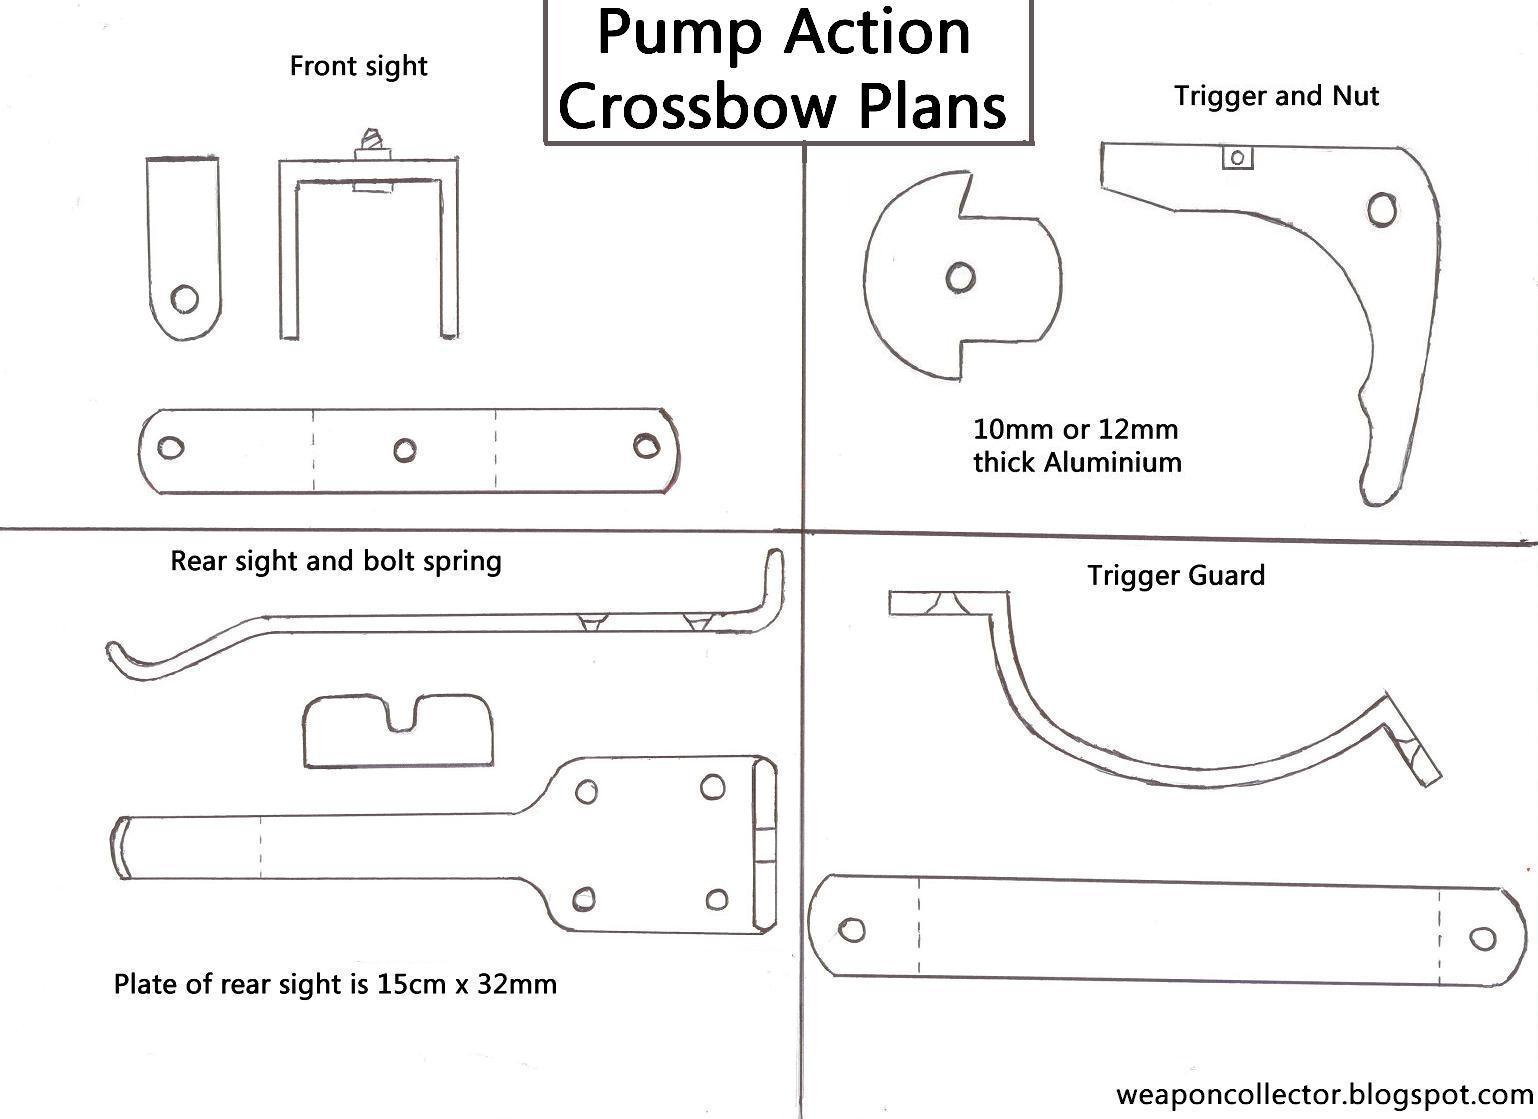 WeaponCollector's Knuckle Duster and Weapon Blog: How To ...